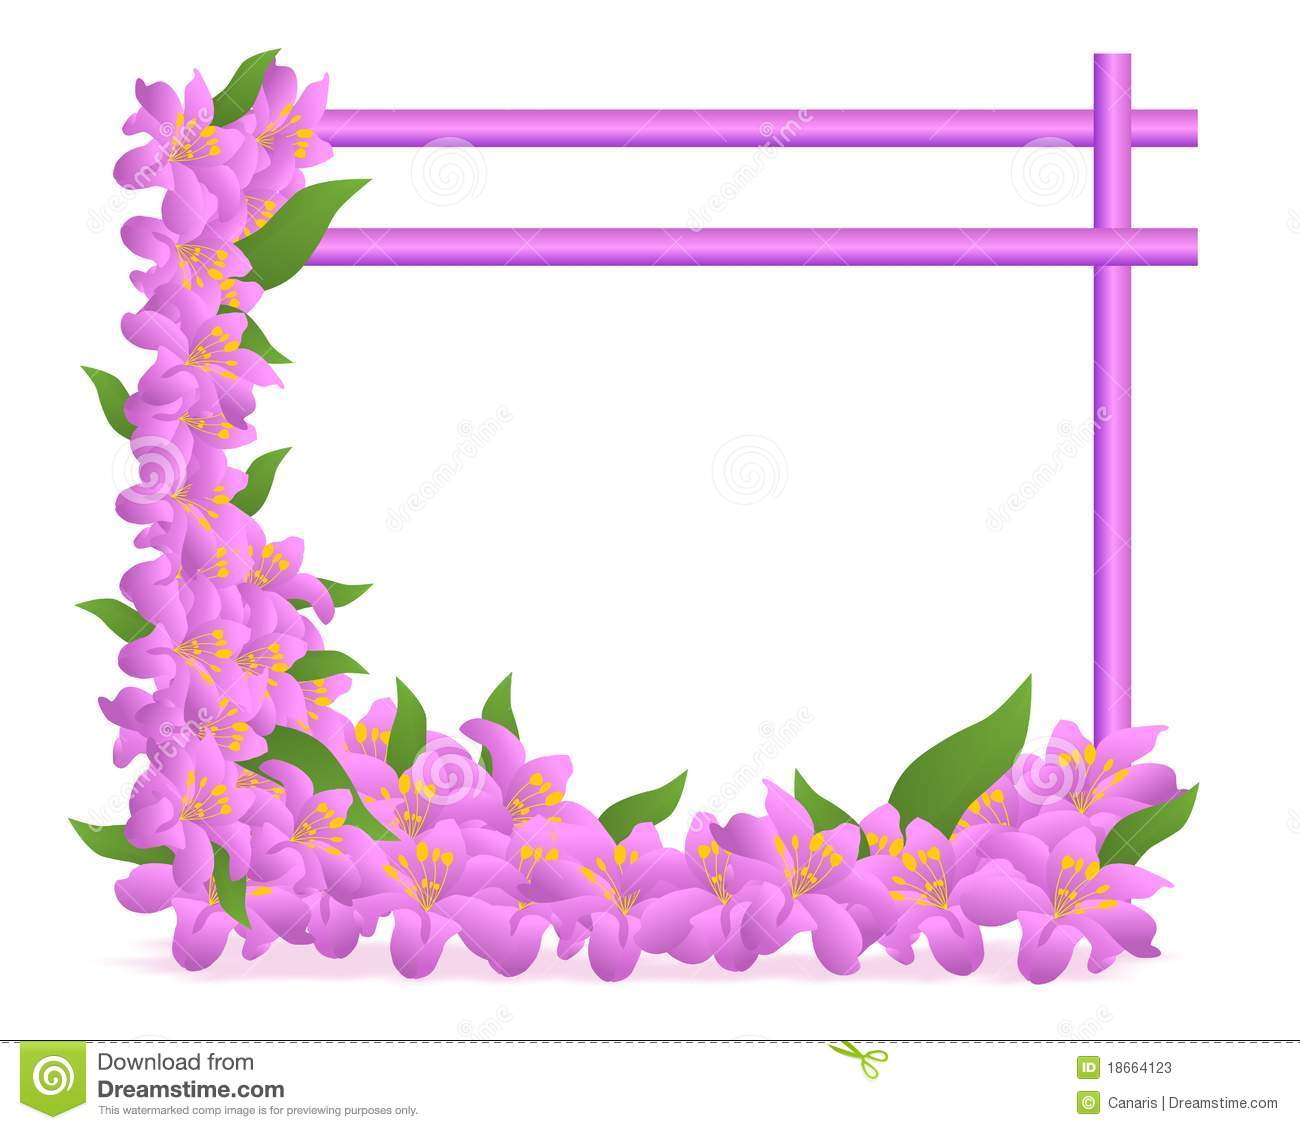 psd pngtree floral frame design pictures | www.picturesboss